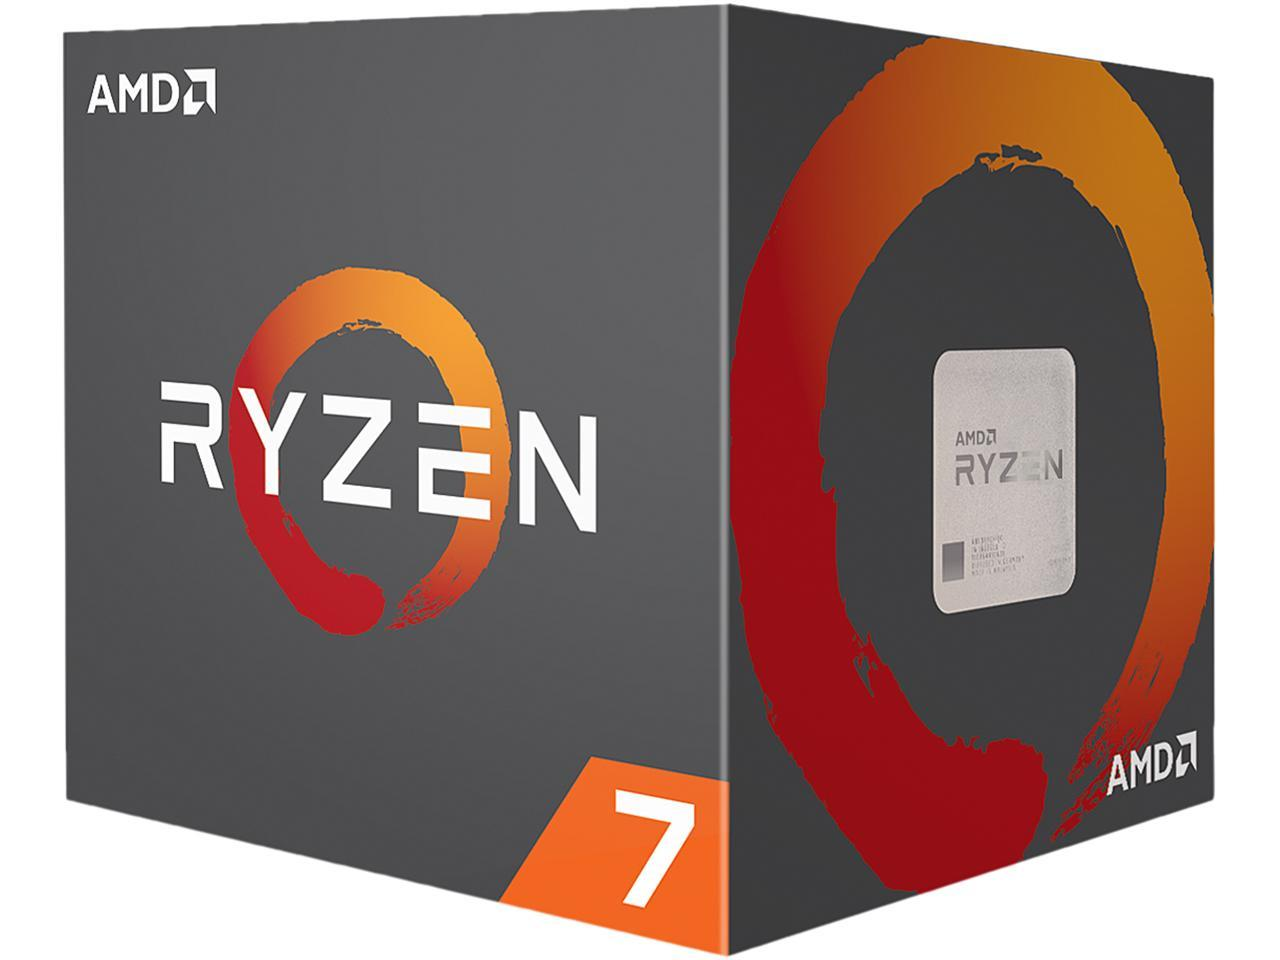 AMD Ryzen 7 2700 3.2GHz Desktop Processor